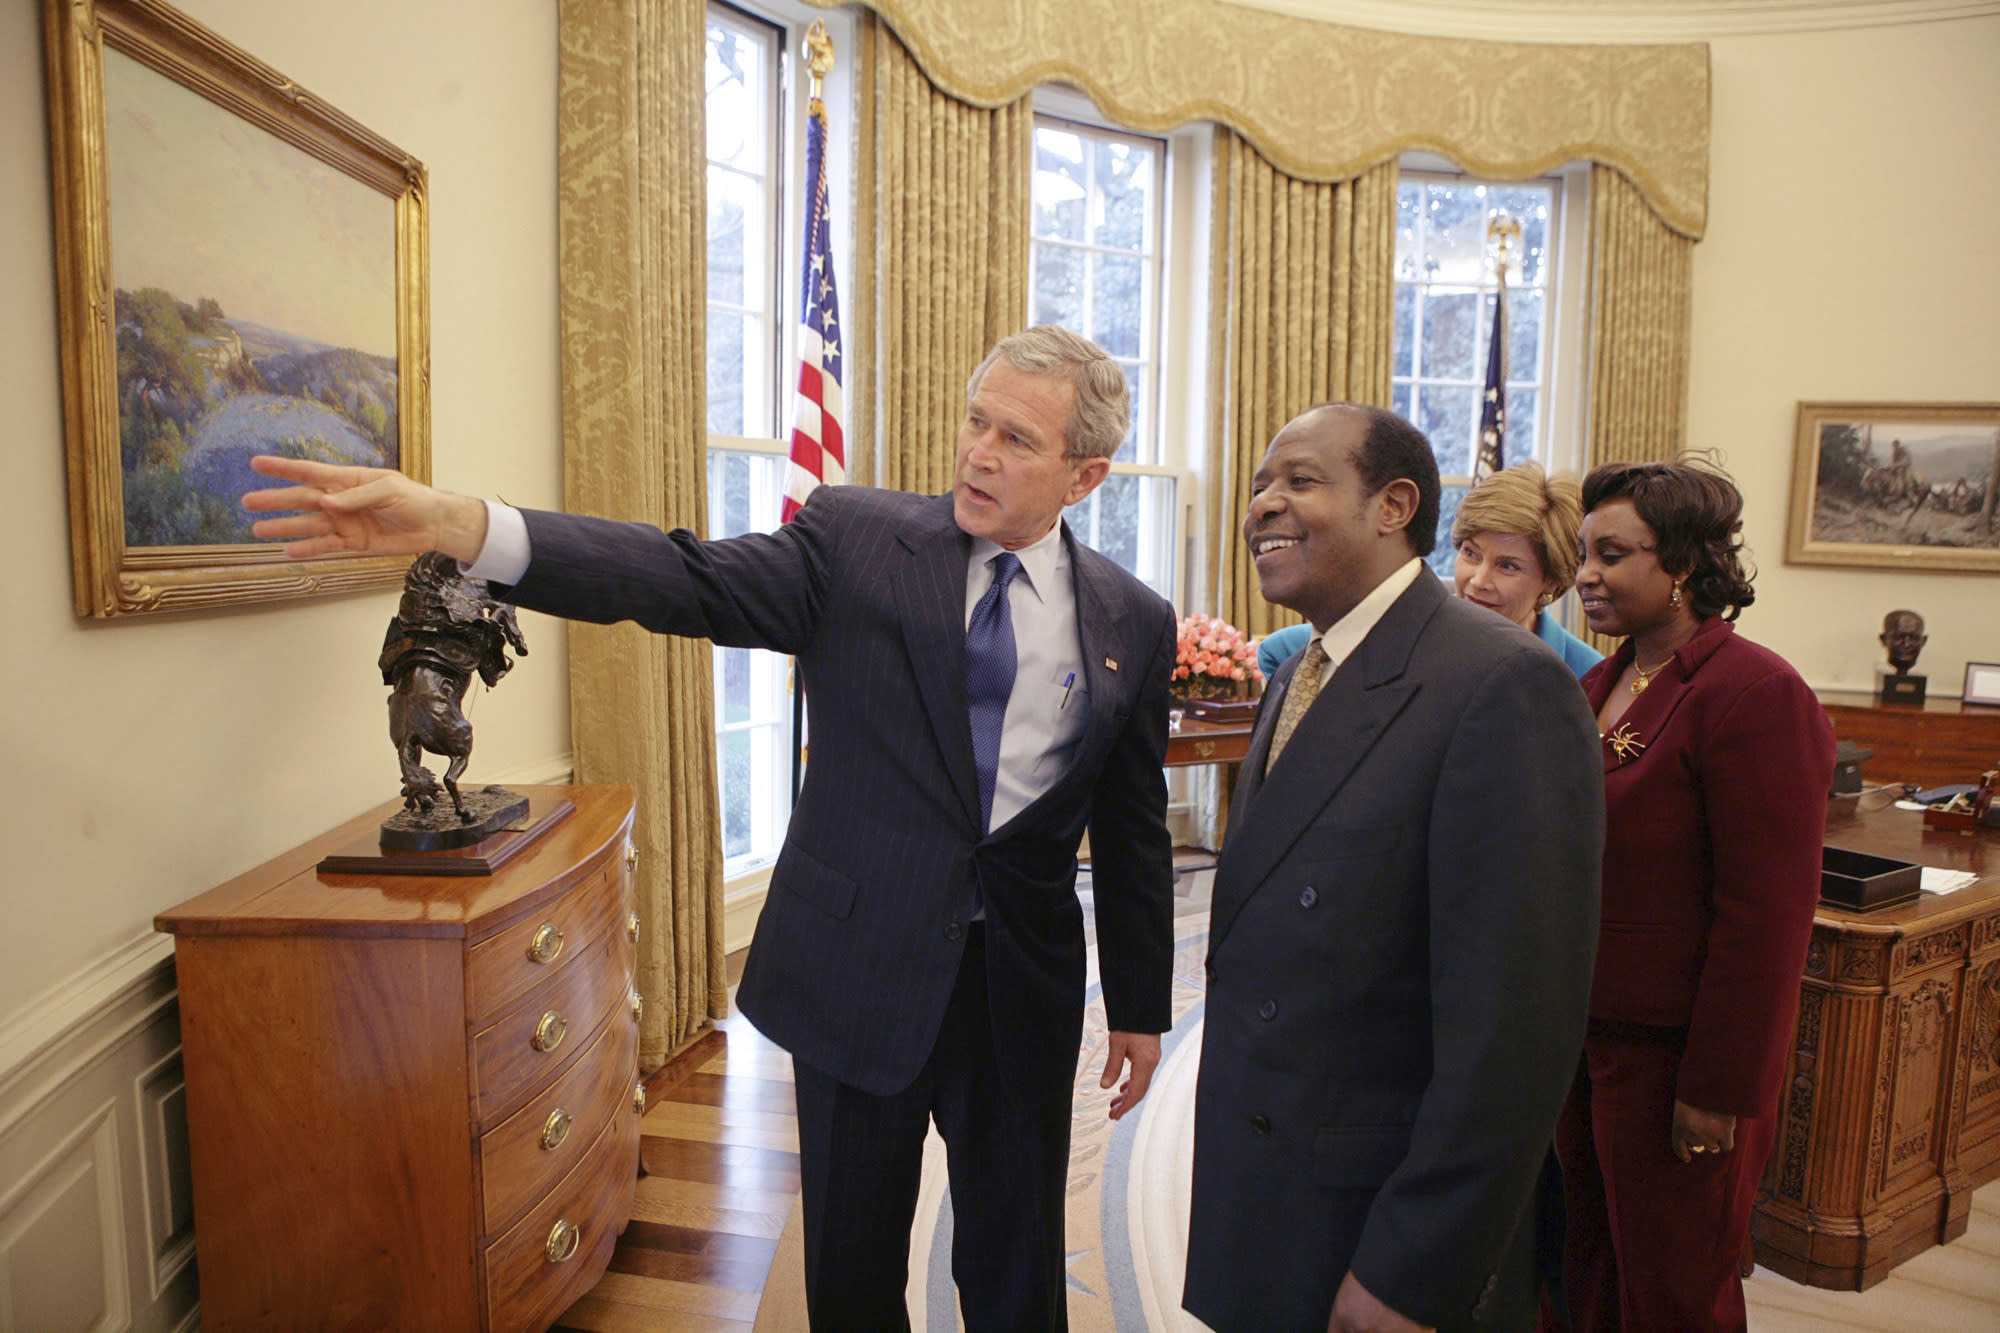 """FILE - In this Thursday, Feb. 17, 2005 file photo provided by the White House, President Bush, left, and first lady Laura Bush, 2nd right, meet with Paul Rusesabagina, center-right, and his wife, Tatiana, right, in the Oval Office. Paul Rusesabagina, who was portrayed in the film """"Hotel Rwanda"""" as a hero who saved the lives of more than 1,200 people from the country's 1994 genocide, and is a well-known critic of President Paul Kagame, has been arrested by the Rwandan government on terror charges, police announced on Monday, Aug. 31, 2020.(Eric Draper/The White House via AP )"""